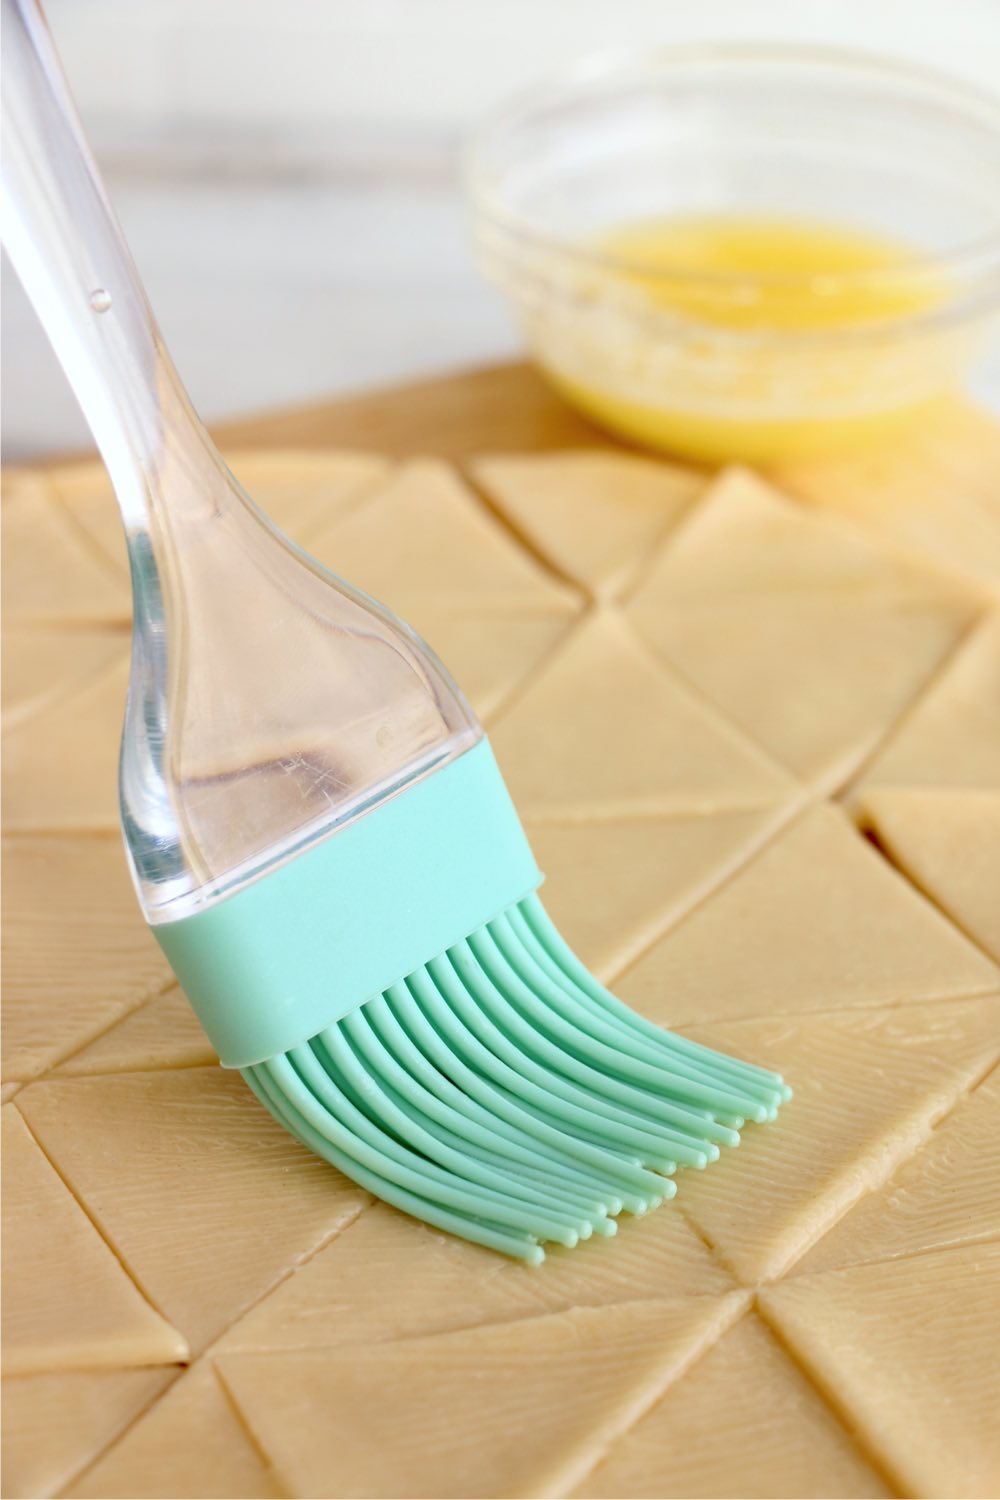 brushing pie crust dough with butter